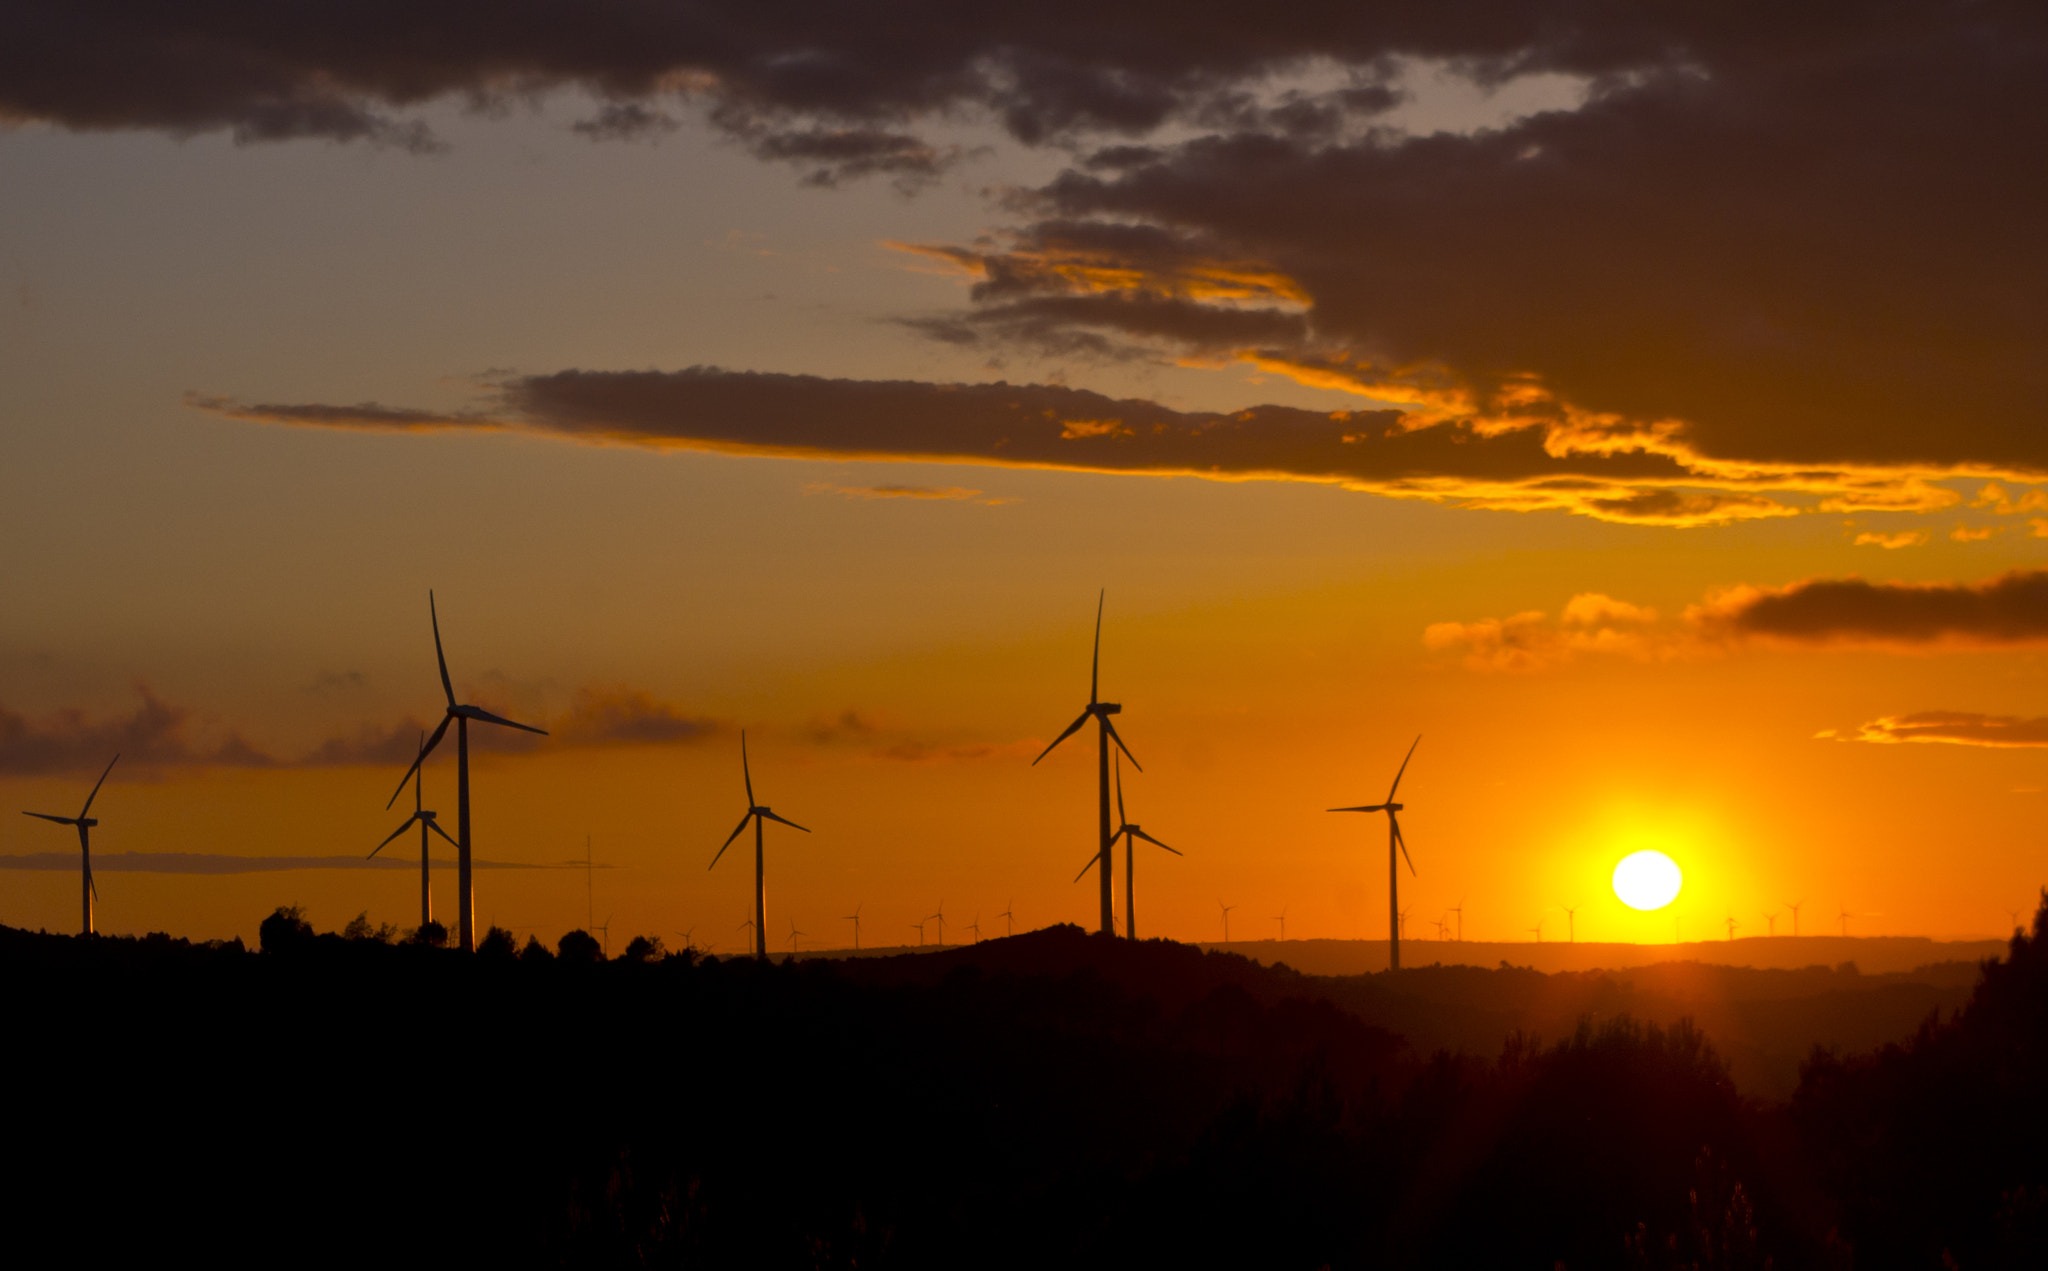 Photograph windmill farm sunset by Manel Camps on 500px